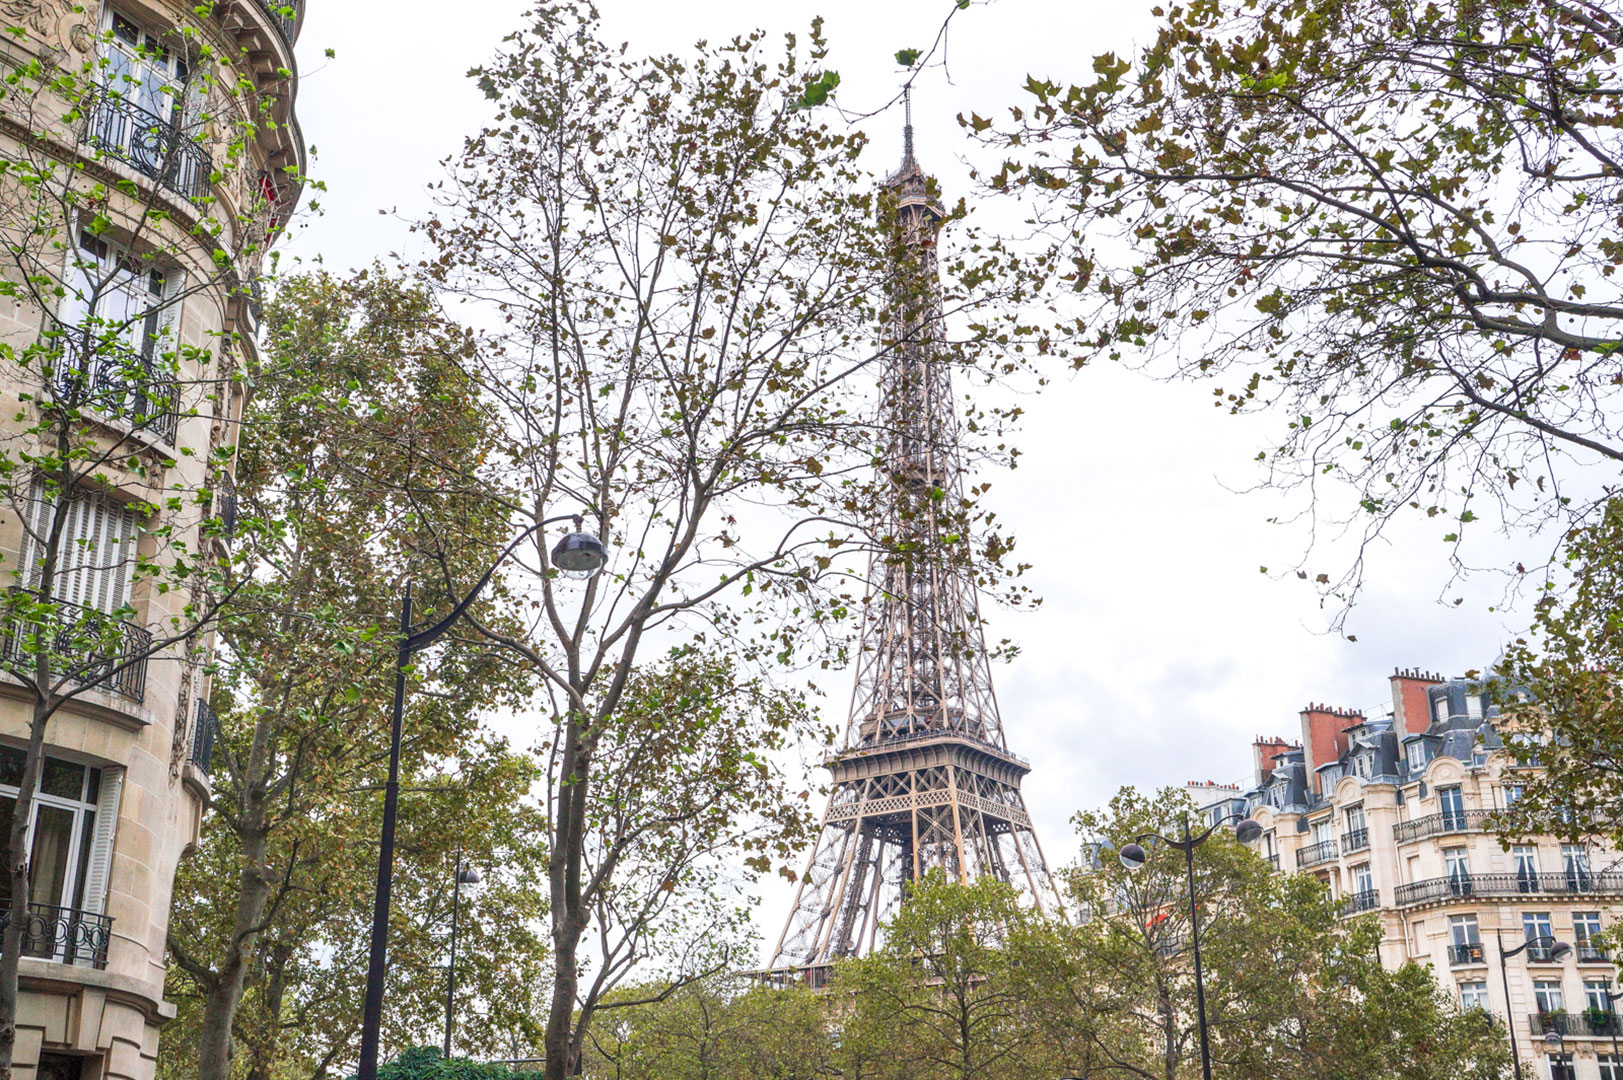 my-paris-fashion-week-diary-paris-by-polina-paraskevopoulou-all-rights-reserved-3